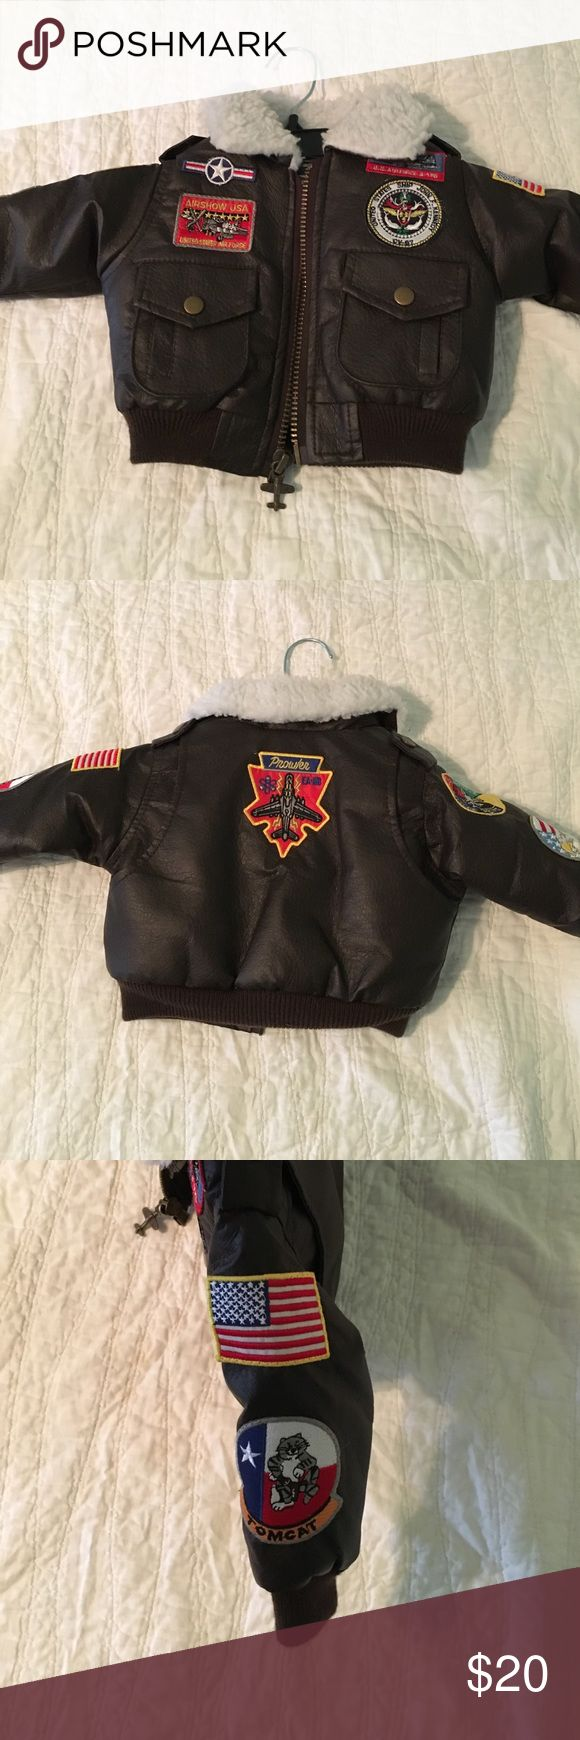 Baby bomber jacket Adorable faux leather bomber jacket with wooly collar & patches. Perfect condition. Up and Away Jackets & Coats